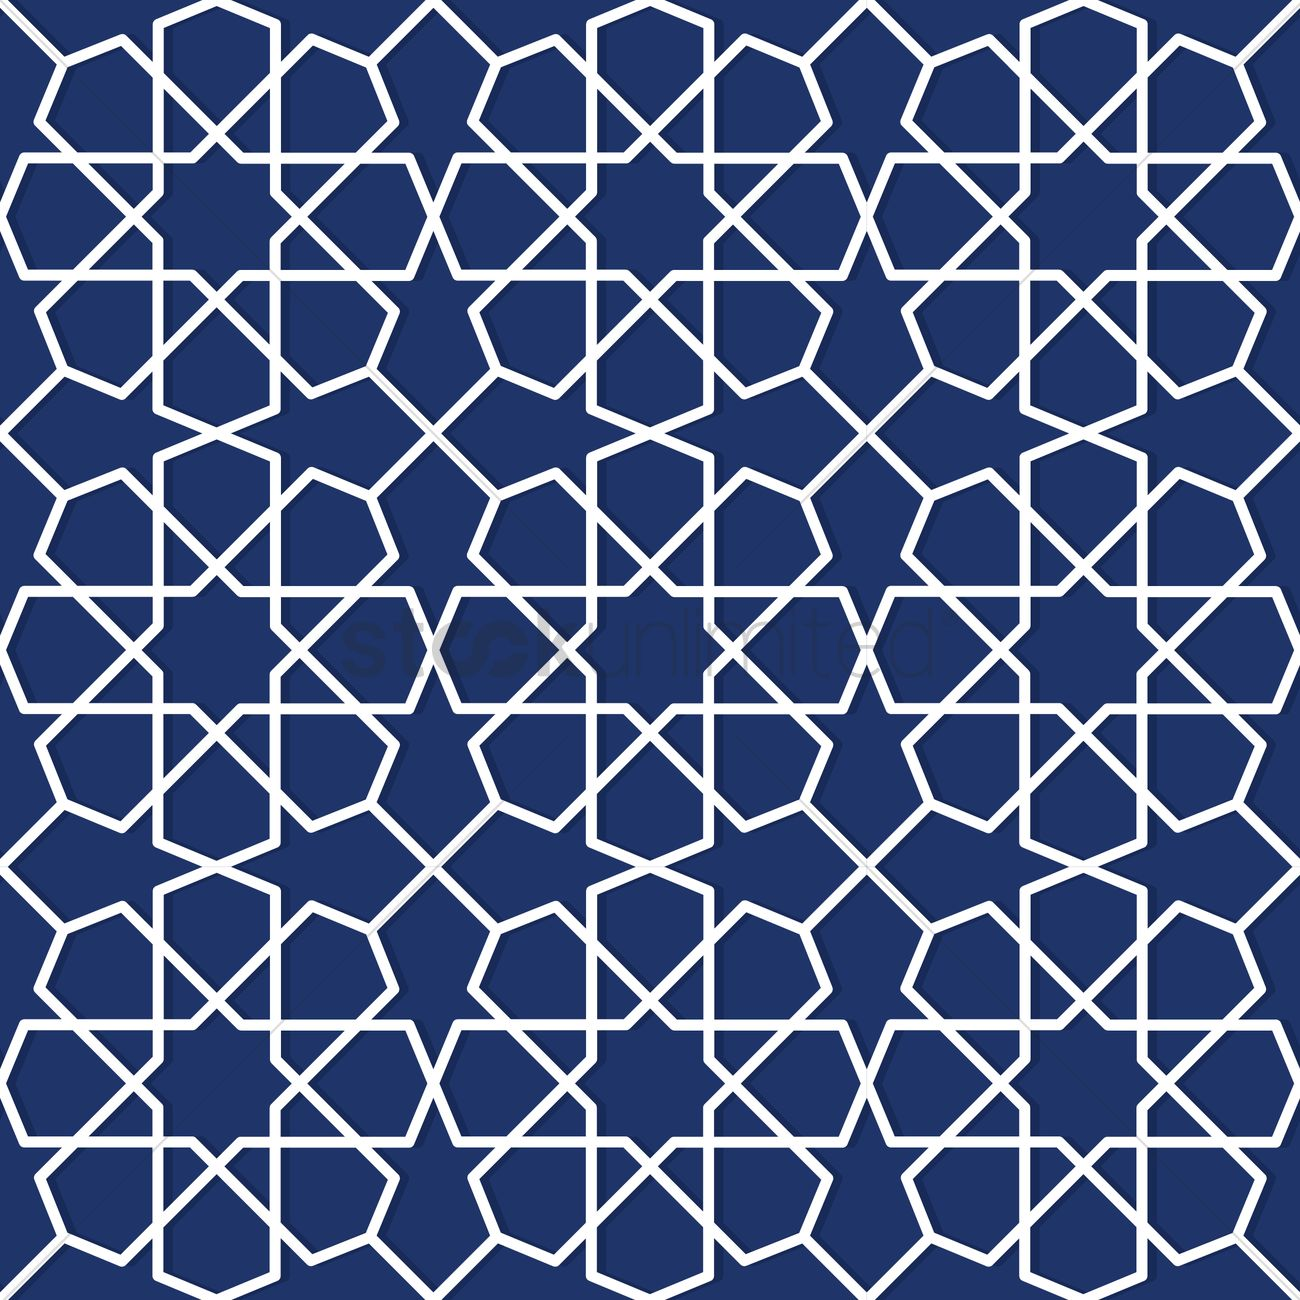 Islamic geometric pattern design Vector Image - 1979669